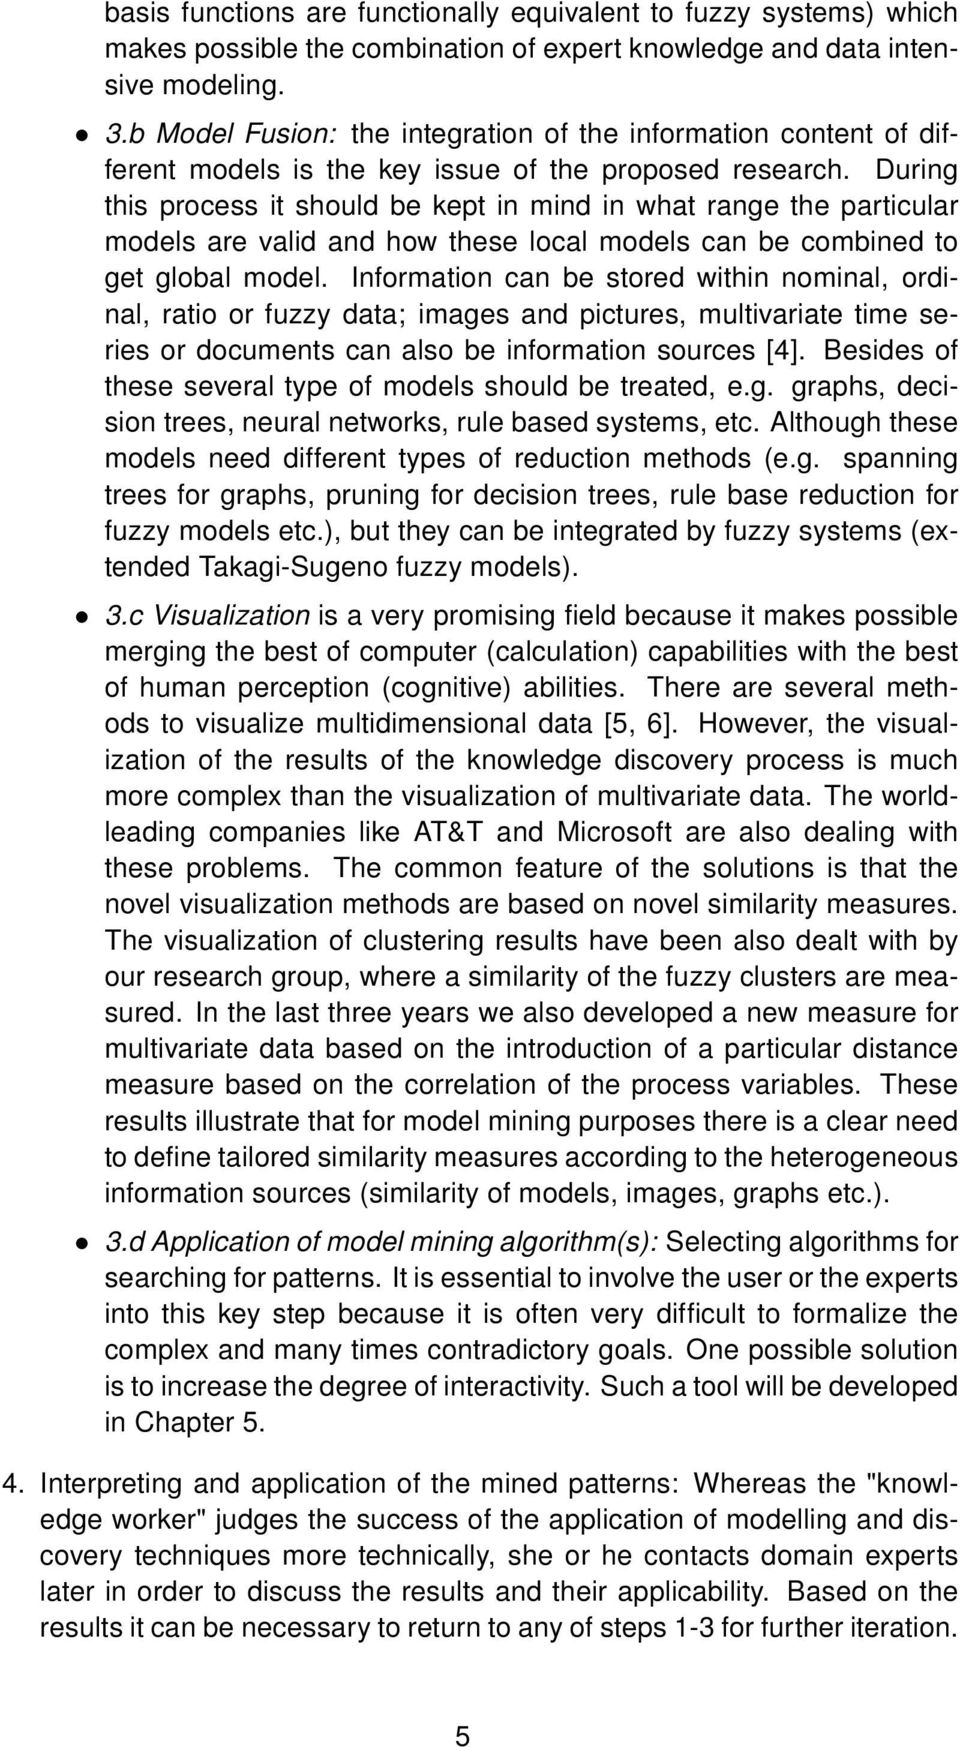 fuzzy data mining + thesis Data mining using intelligent systems: an optimized weighted fuzzy decision tree approach by xuqin li a thesis submitted in partial fulfillment of the requirements for the degree of.